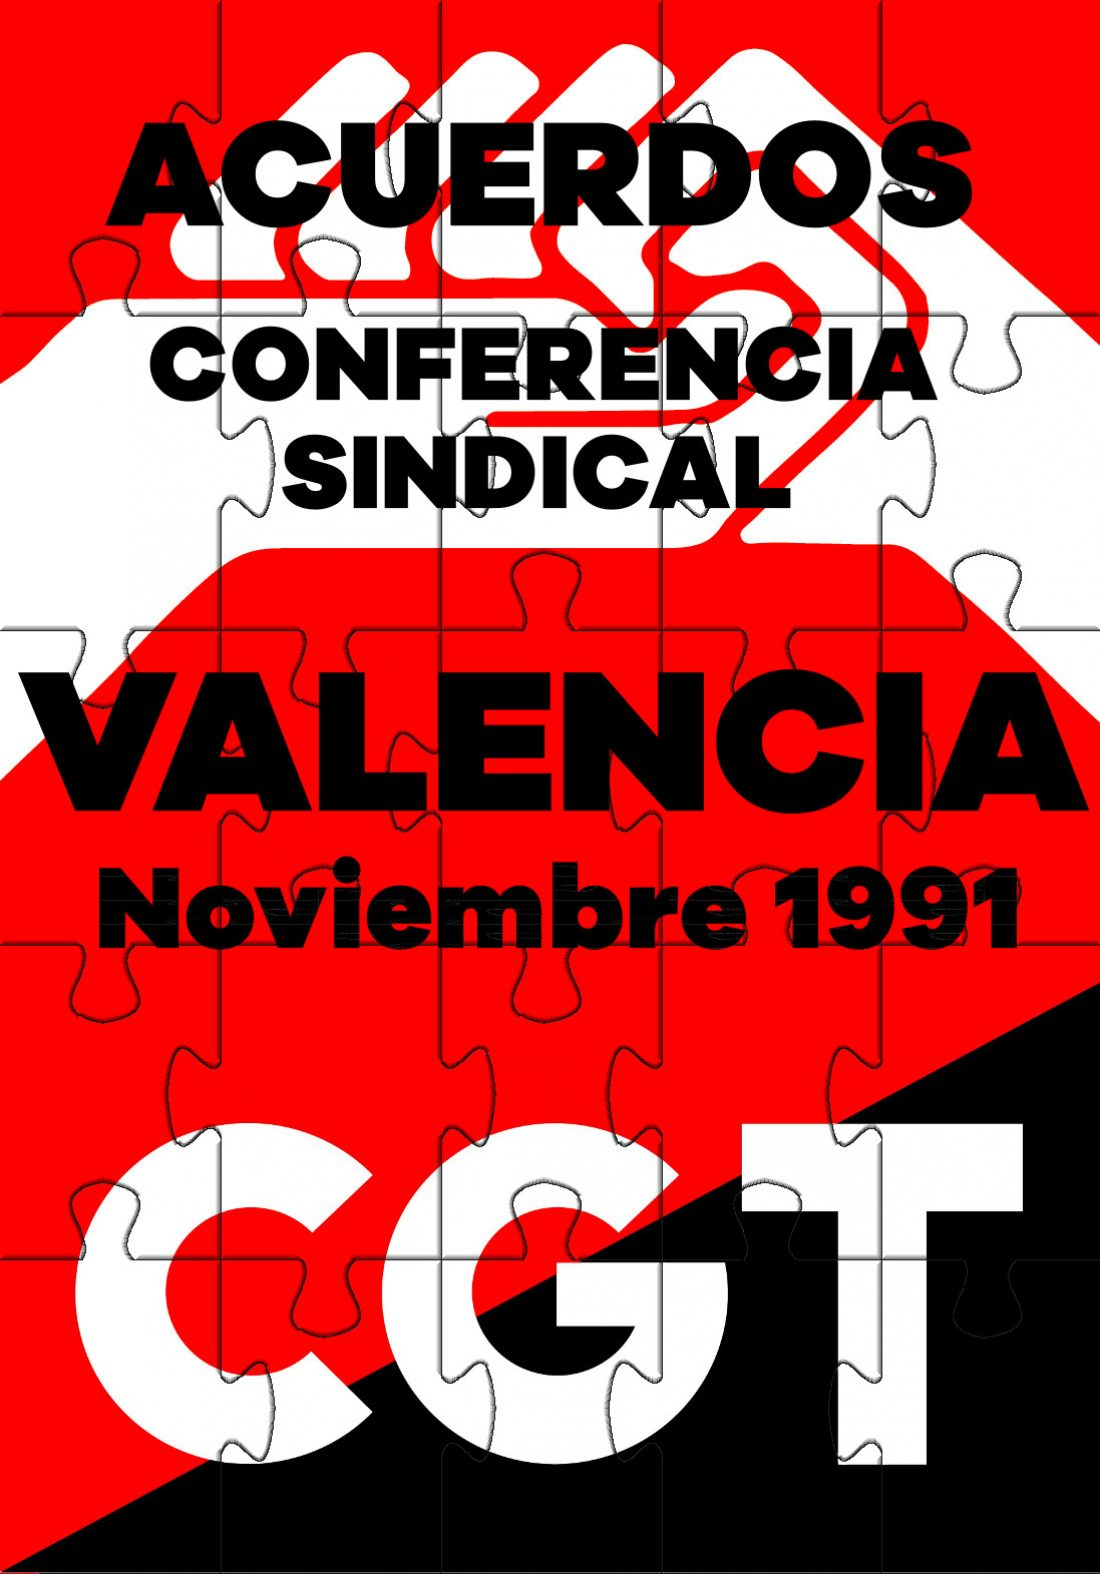 III Conferencia Sindical Valencia 1991